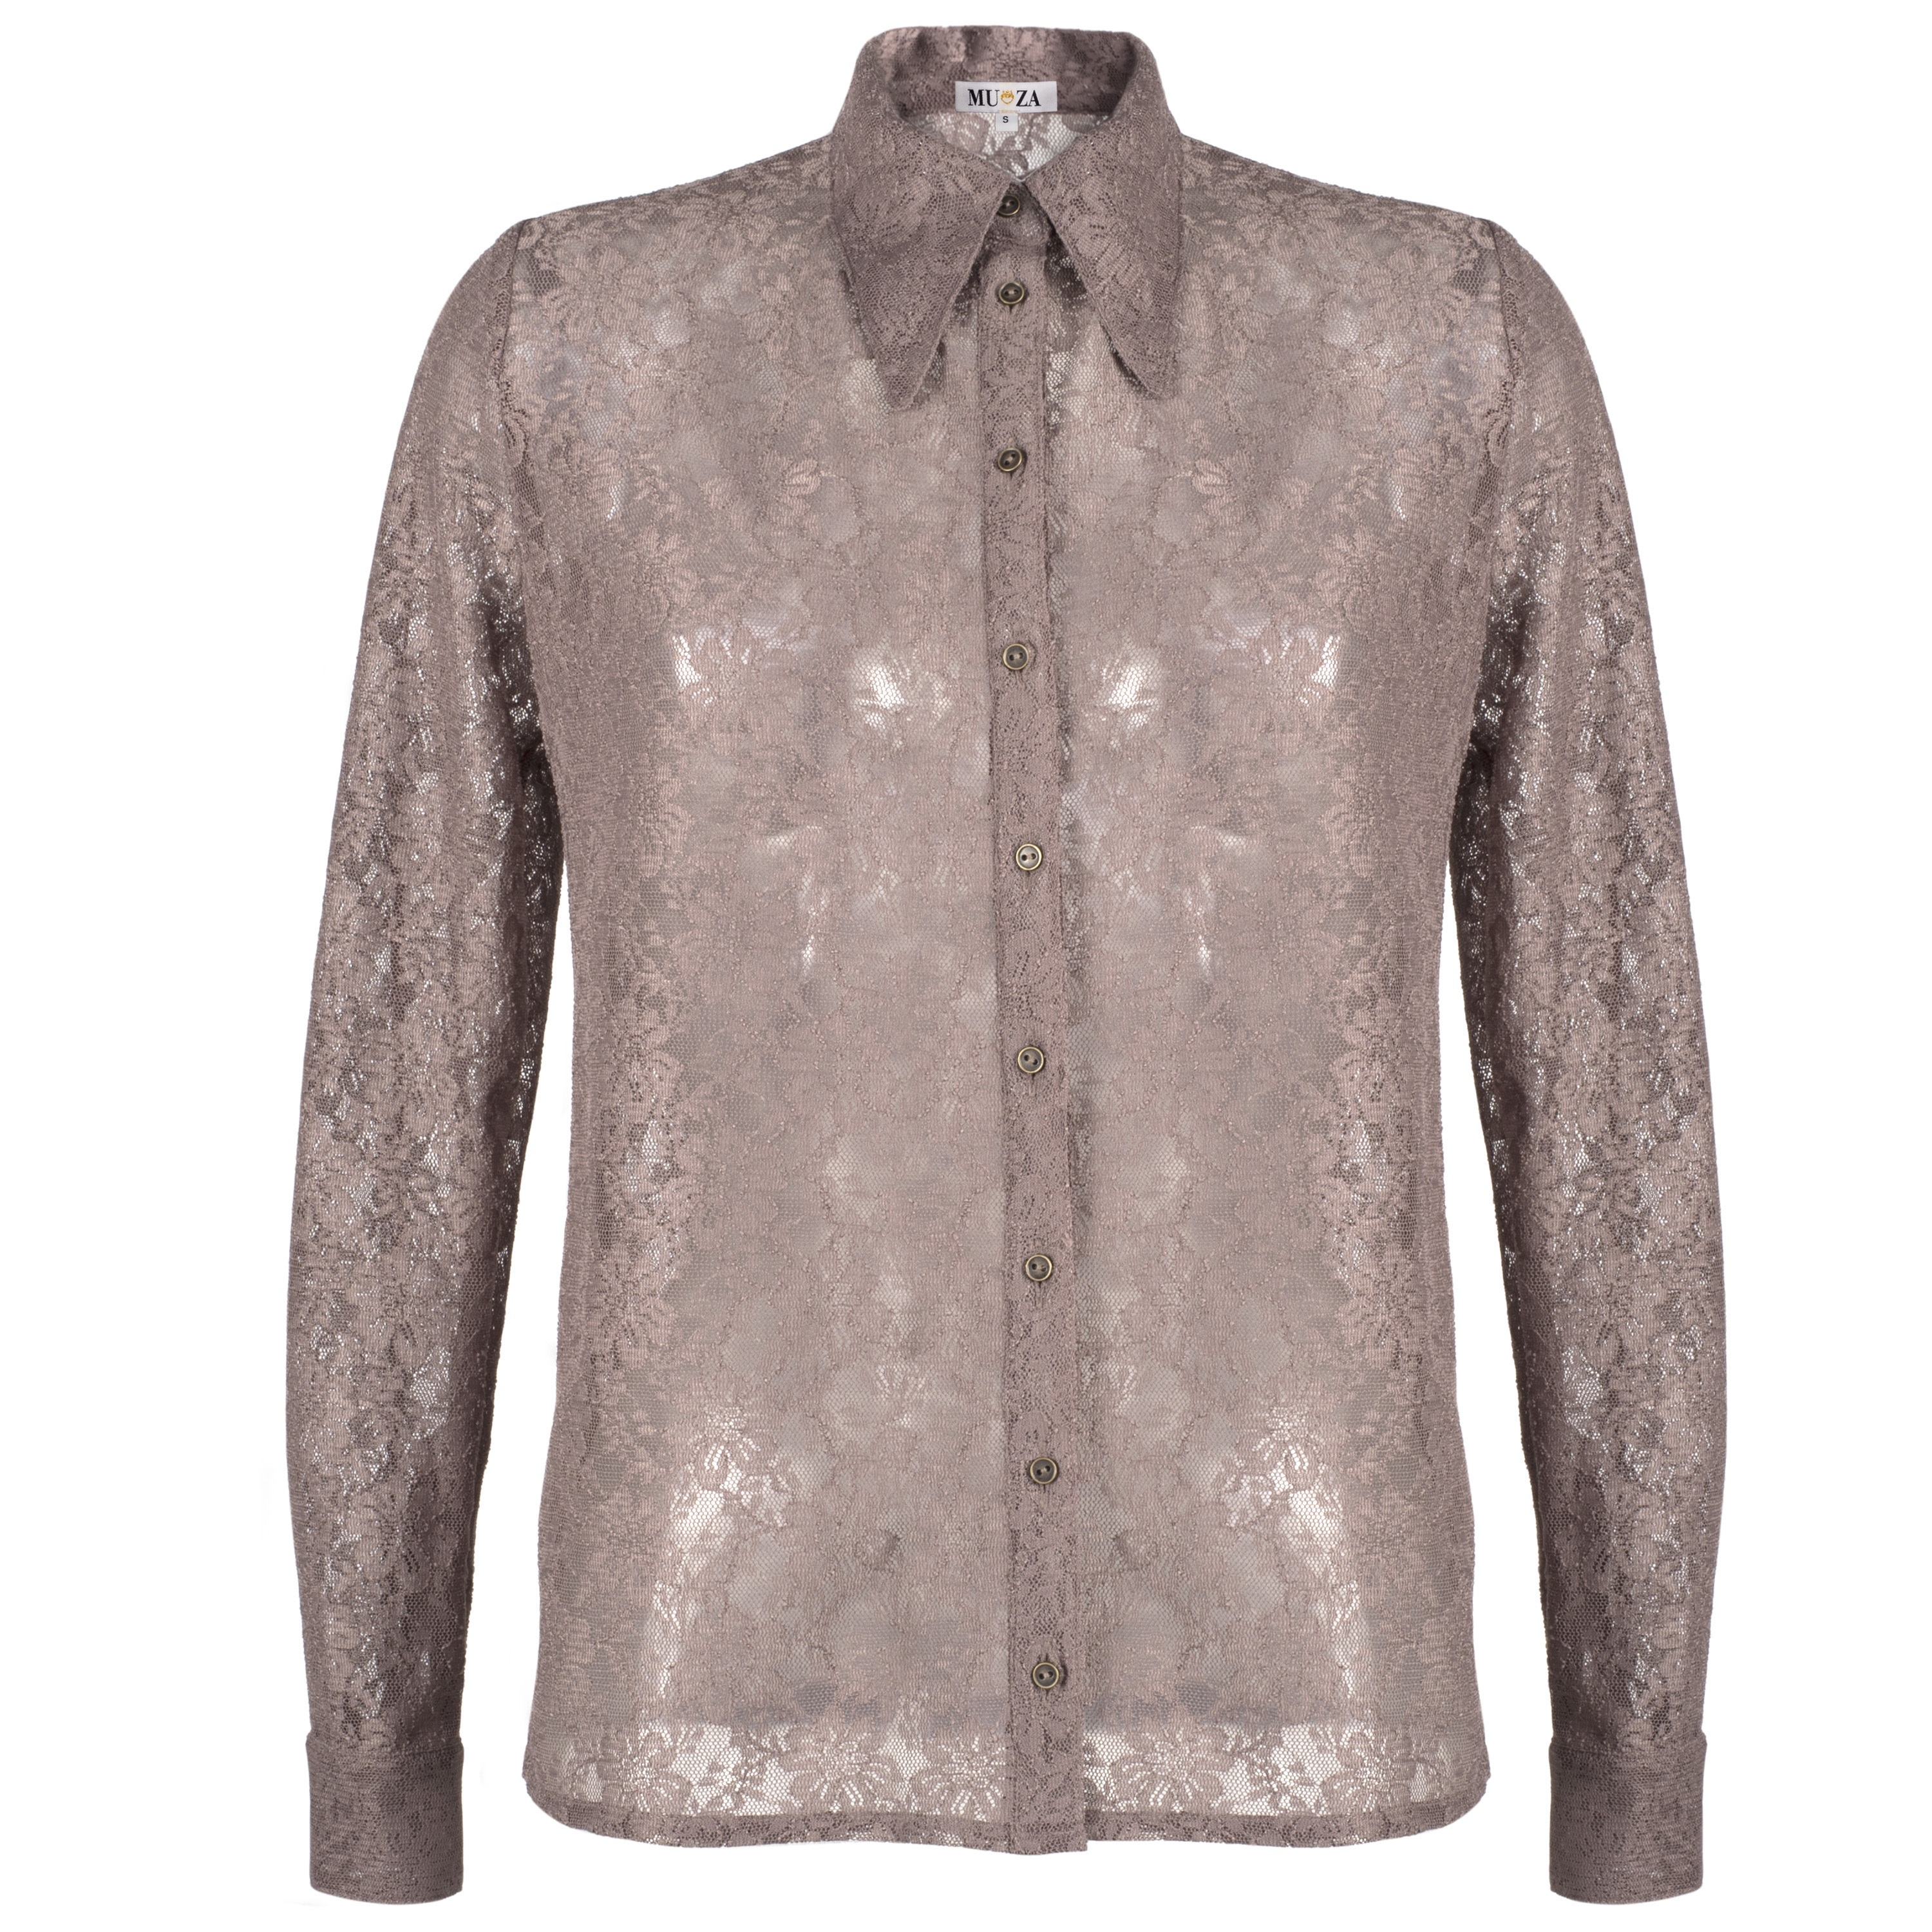 5e34a2dbf3 Lace Shirt With Large Collar, Vintage Style Button Down Shirt, Retro Shirt, Boho  Chic, Close Fit Shirt, 70s Style Shirt, Long Sleeve Blouse on Storenvy